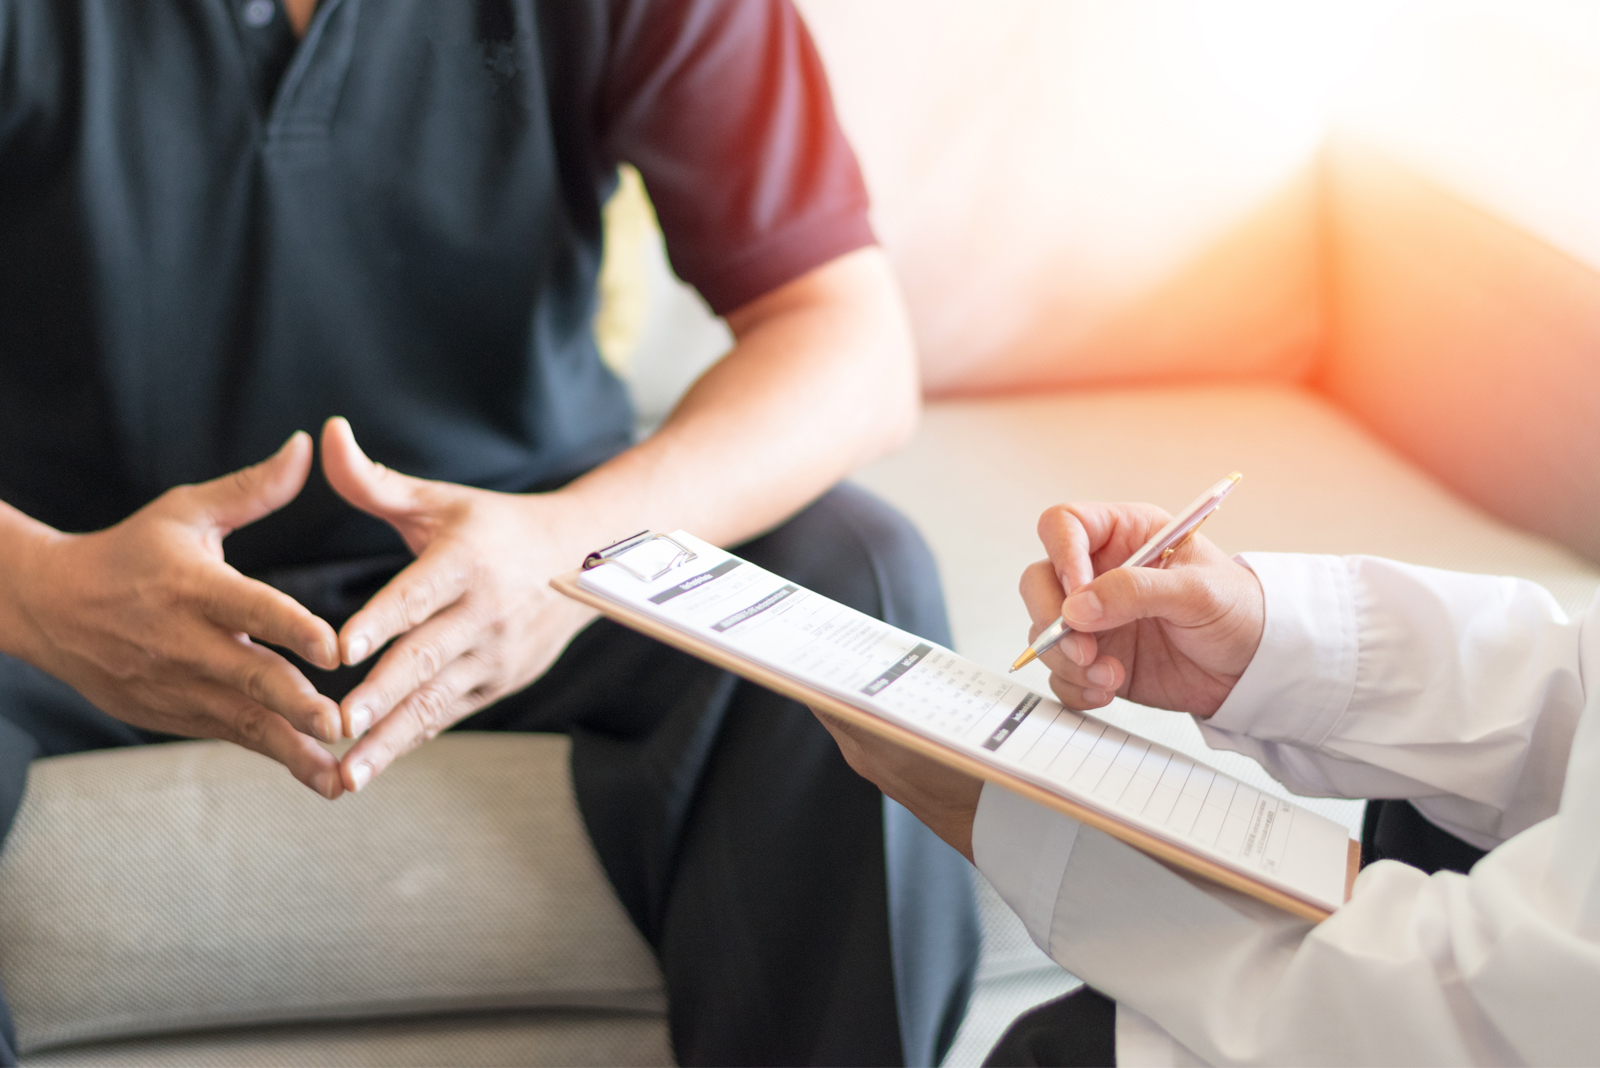 Let's talk about erectile dysfunction with Dr Alice Fitzgibbon